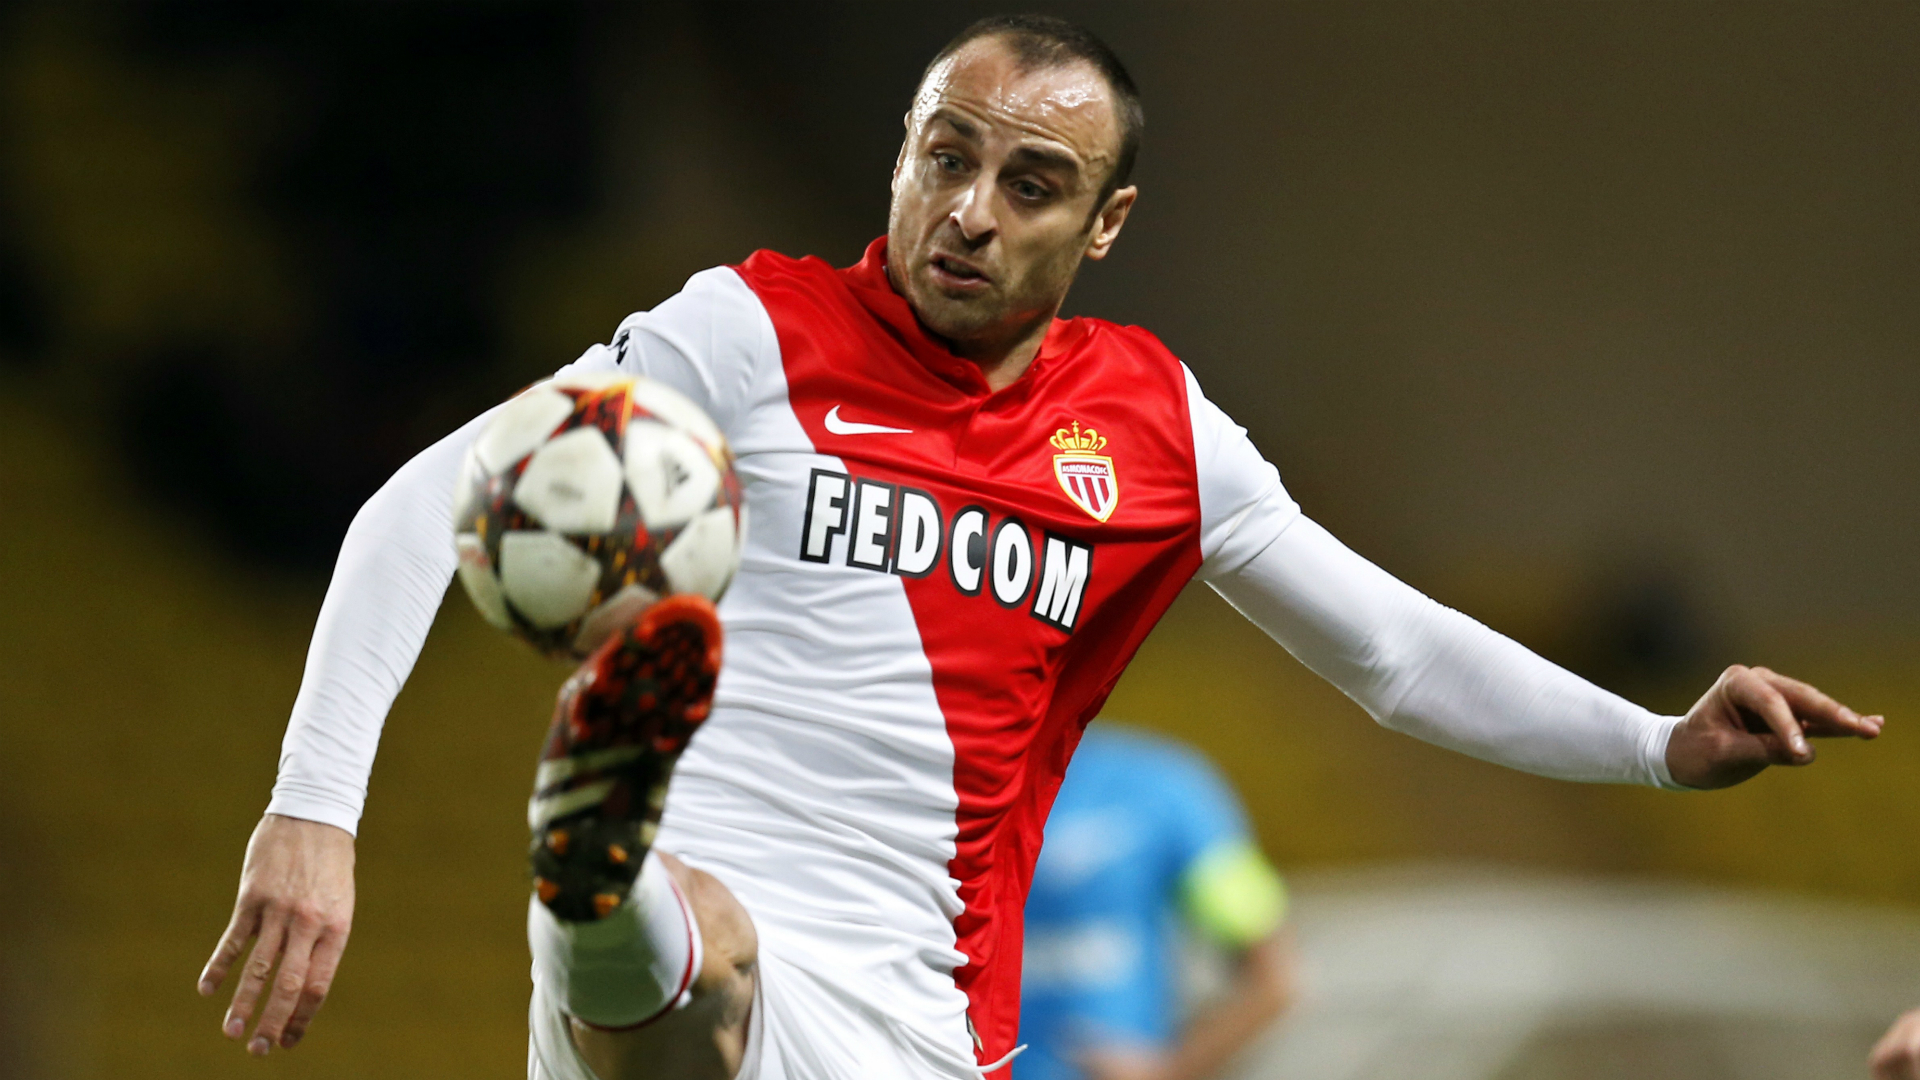 Dimitar Berbatov heads to Indian side Kerala